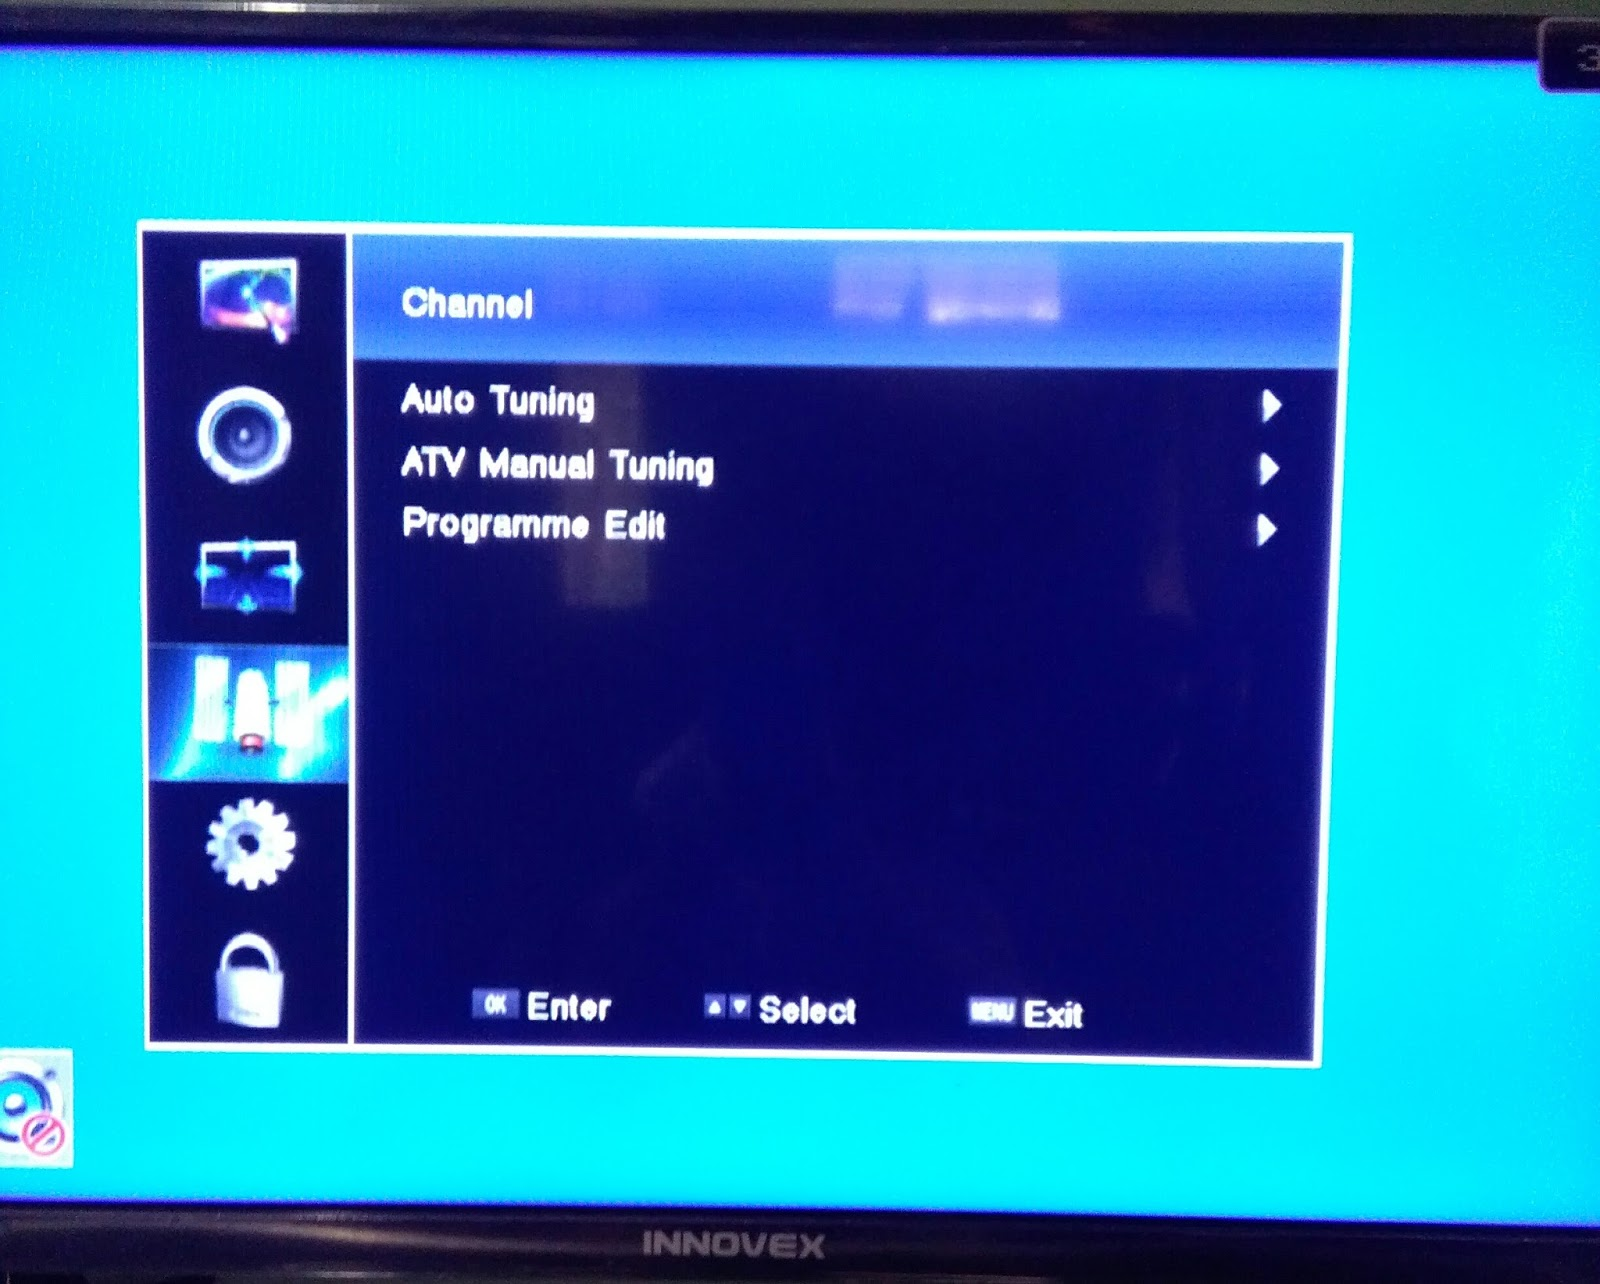 Led Per Auto Tuning.How To Tune Innovex Led Tv